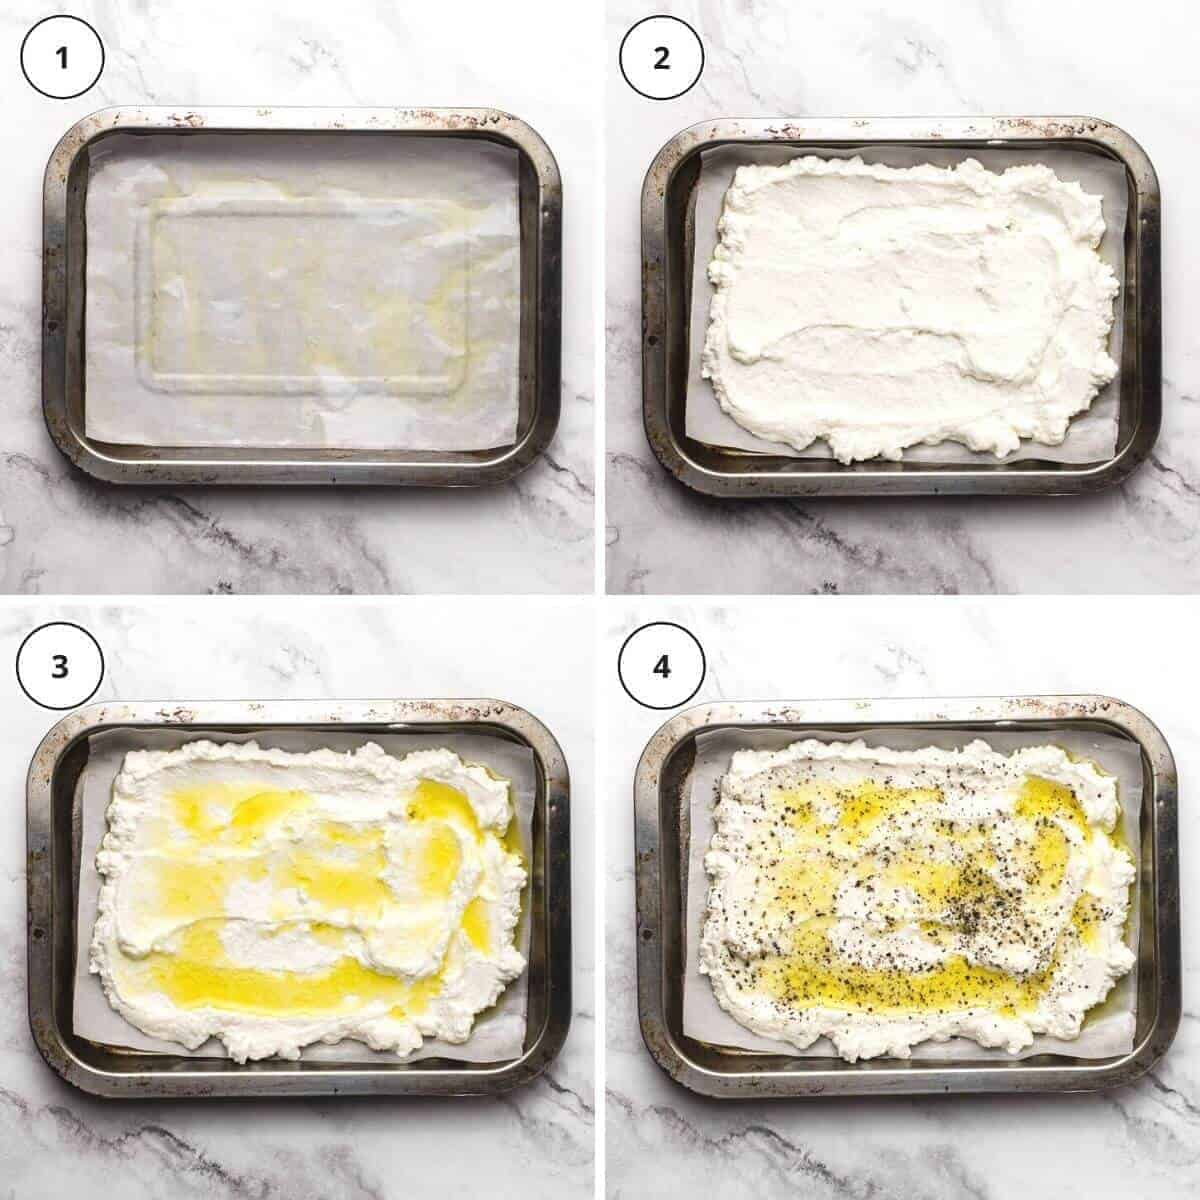 picture steps of written instructions how to bake ricotta